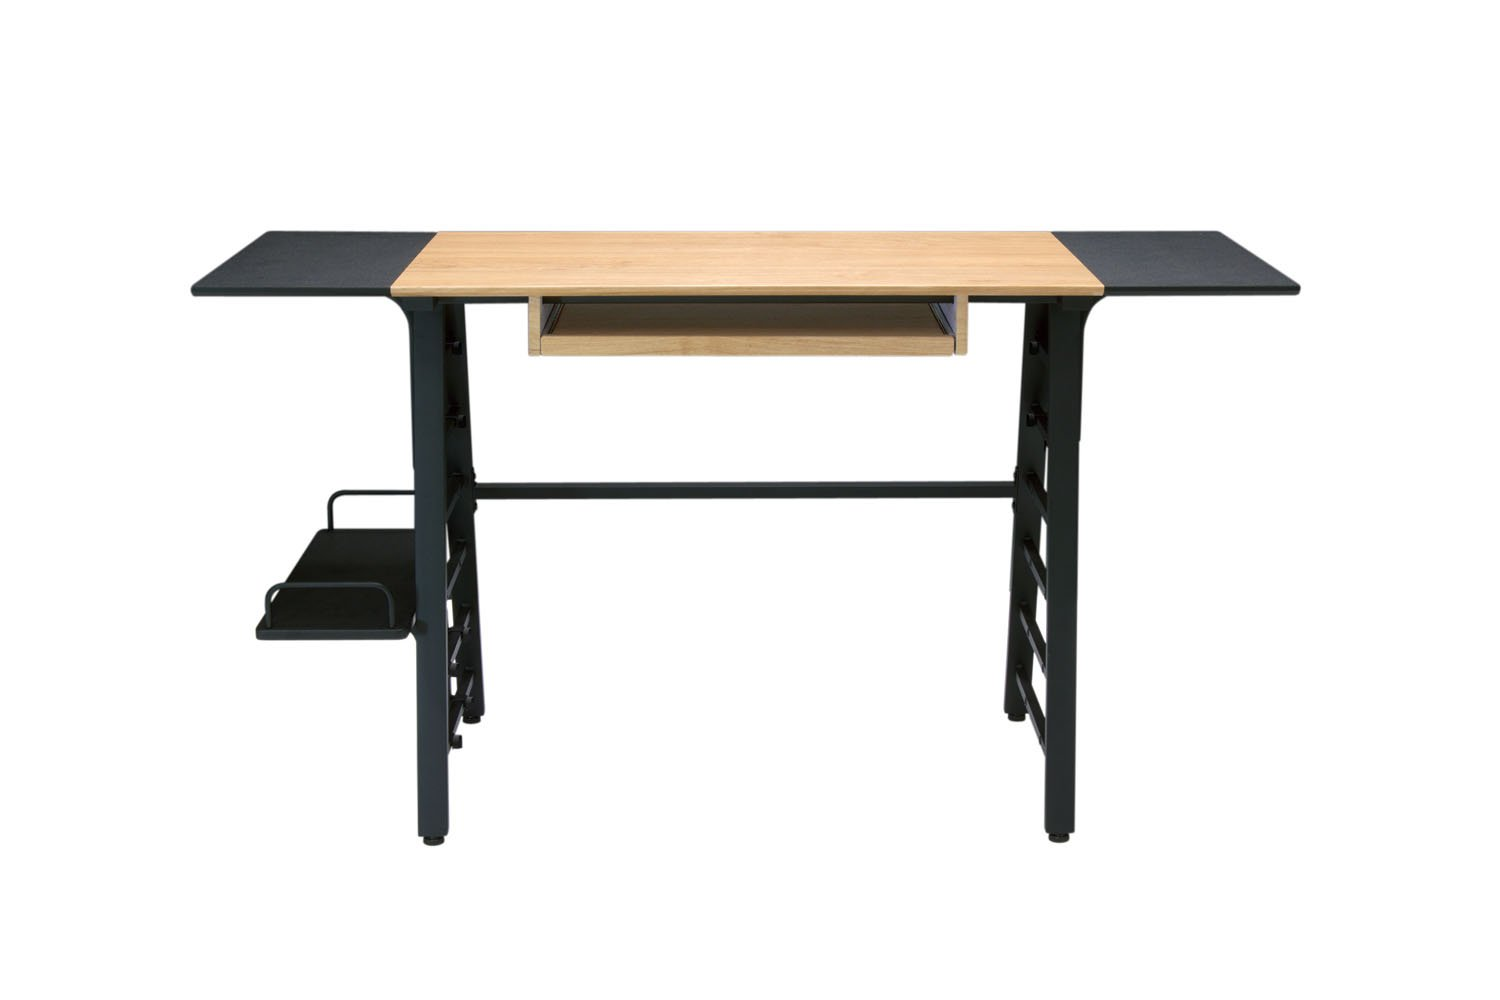 Calico Designs 51240 Convertible Art Drawing/Computer Desk For Kids, Ashwood/Graphite by Calico Designs